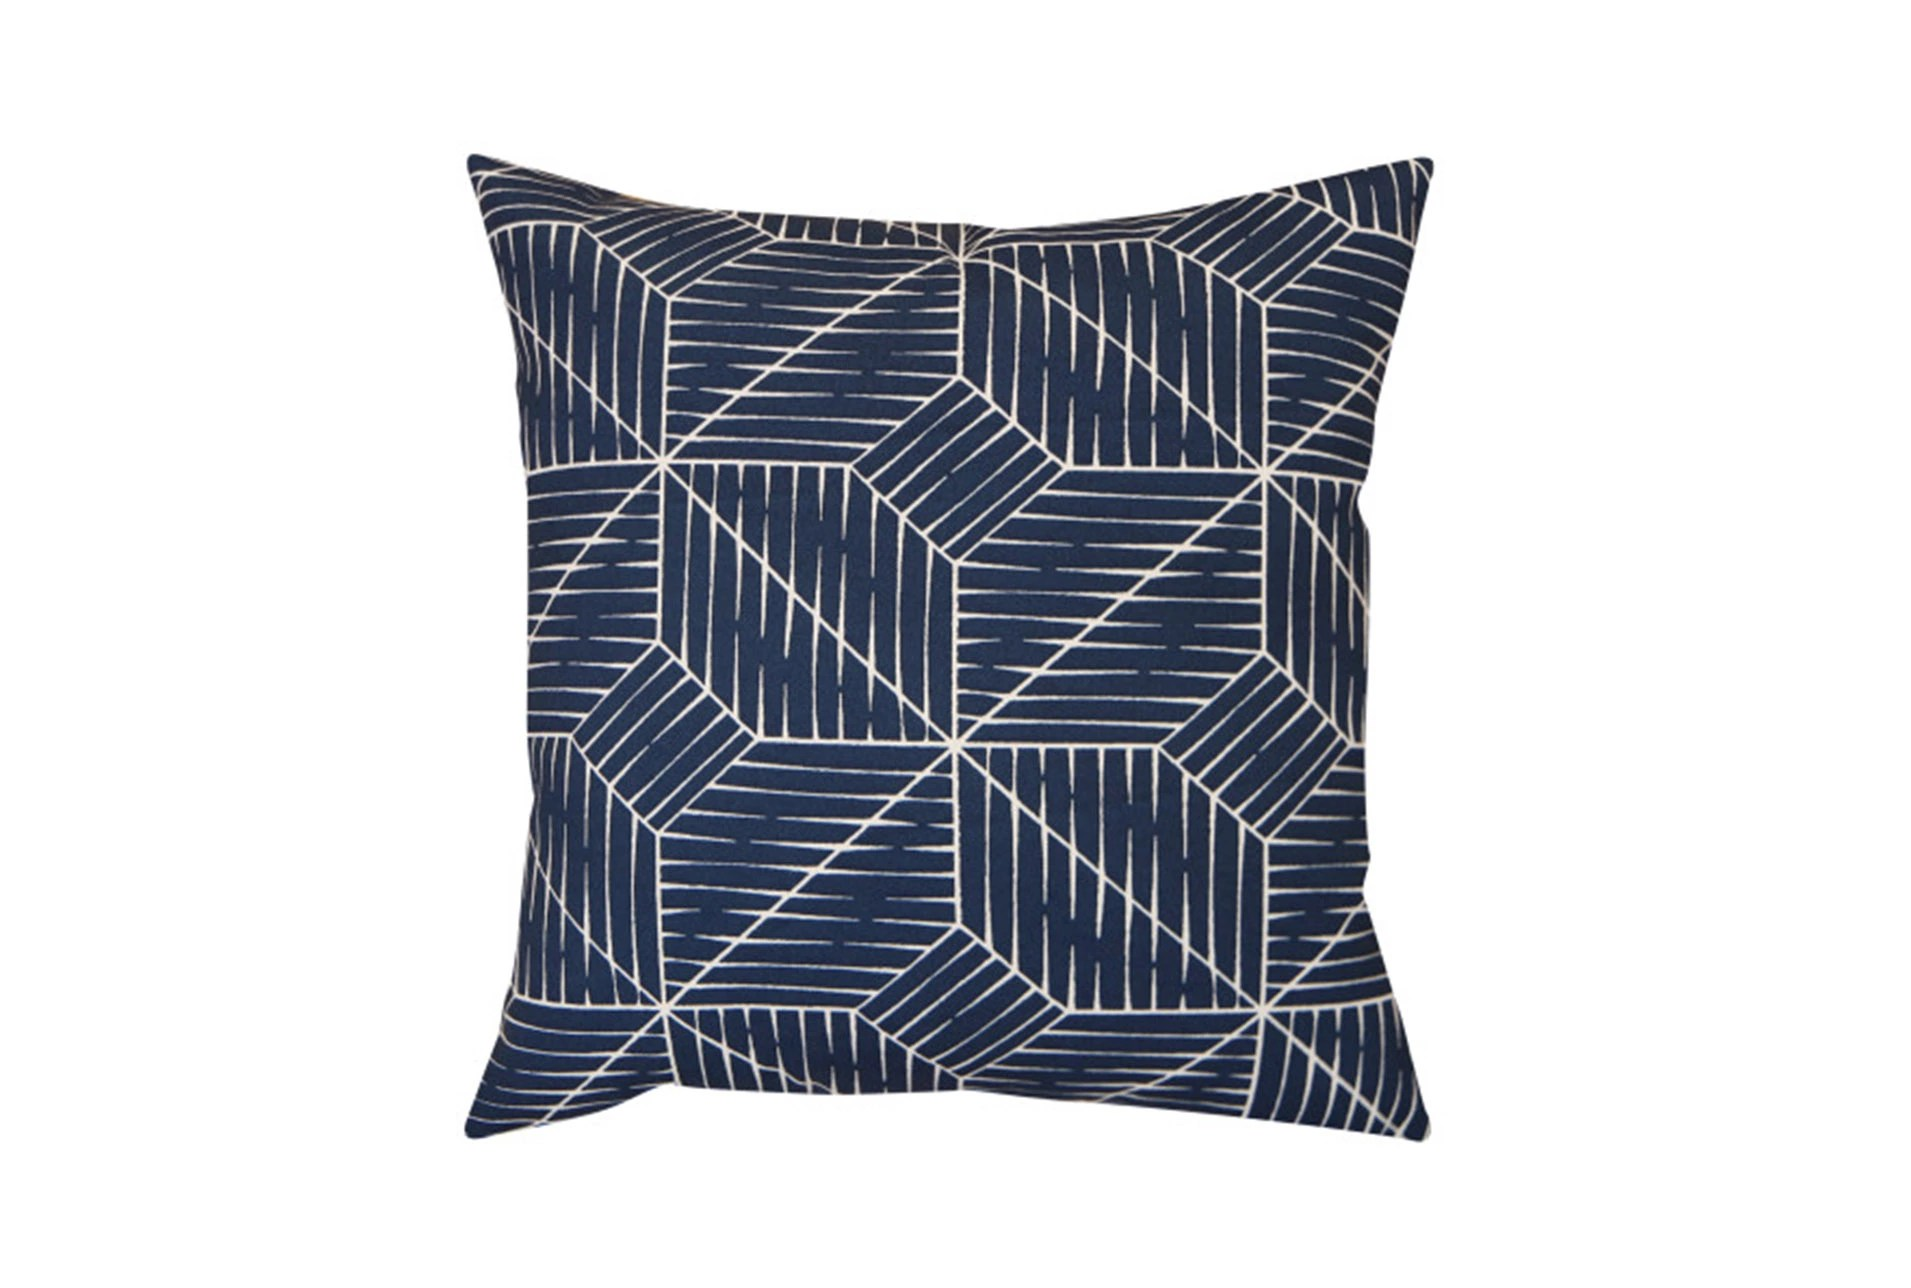 Outdoor Accent Pillow-cross Hatch Navy 18x18 Living Spaces